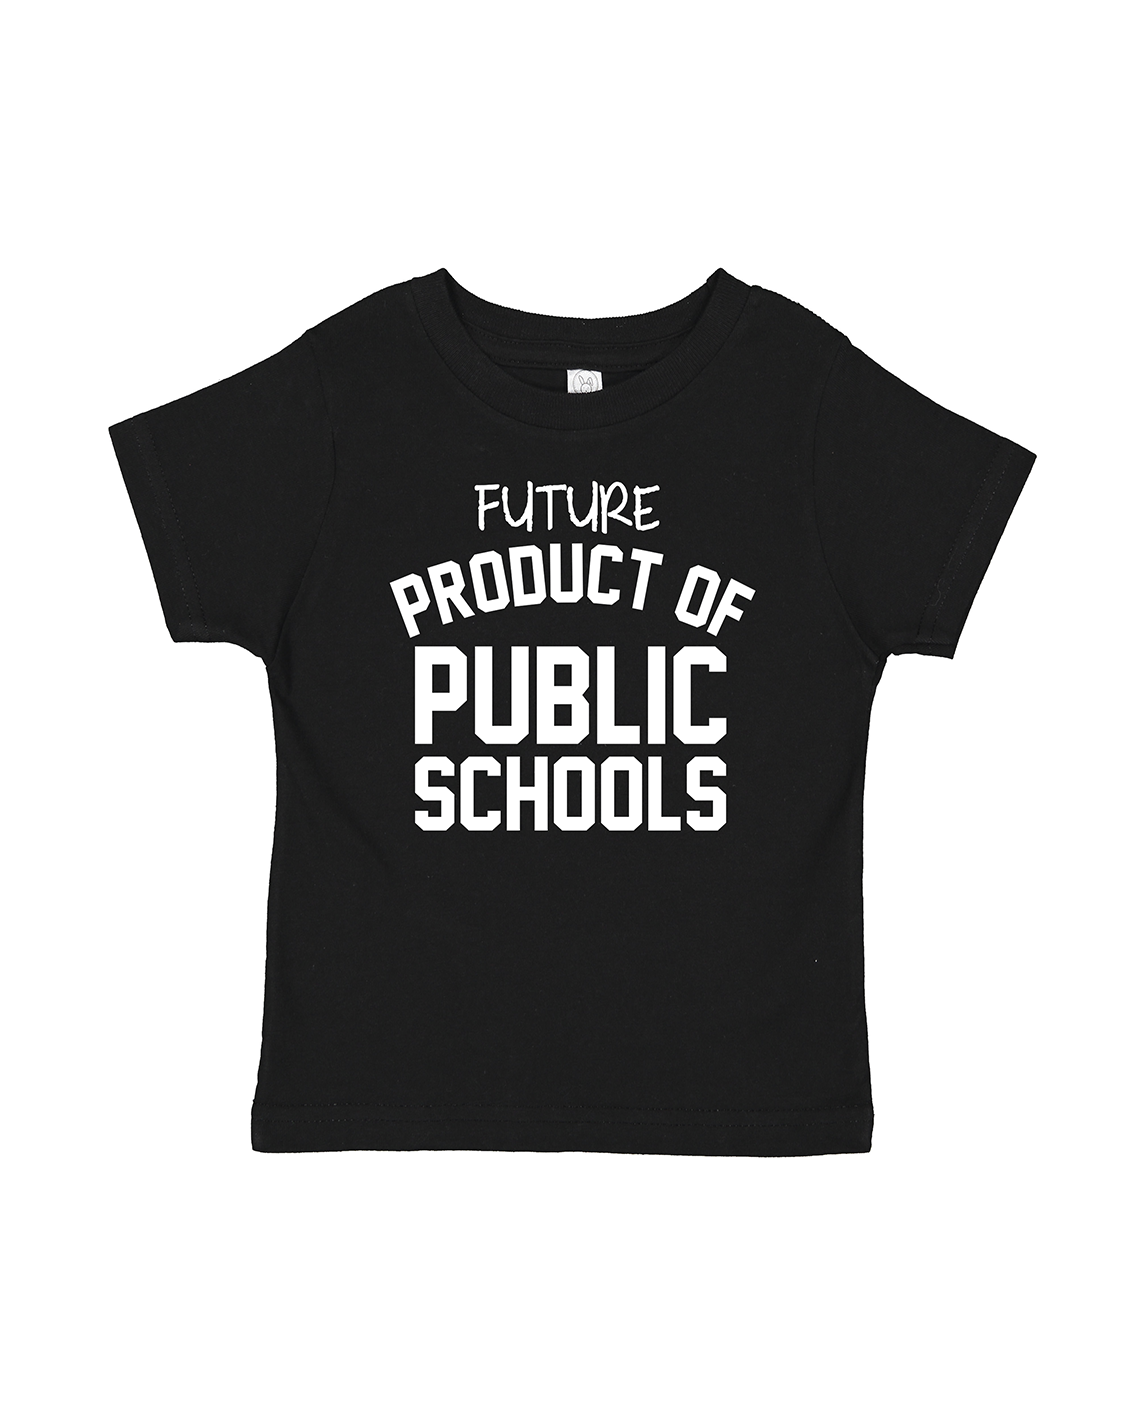 Future Product of Public Schools Short Sleeve Tee - Black - Originalitees